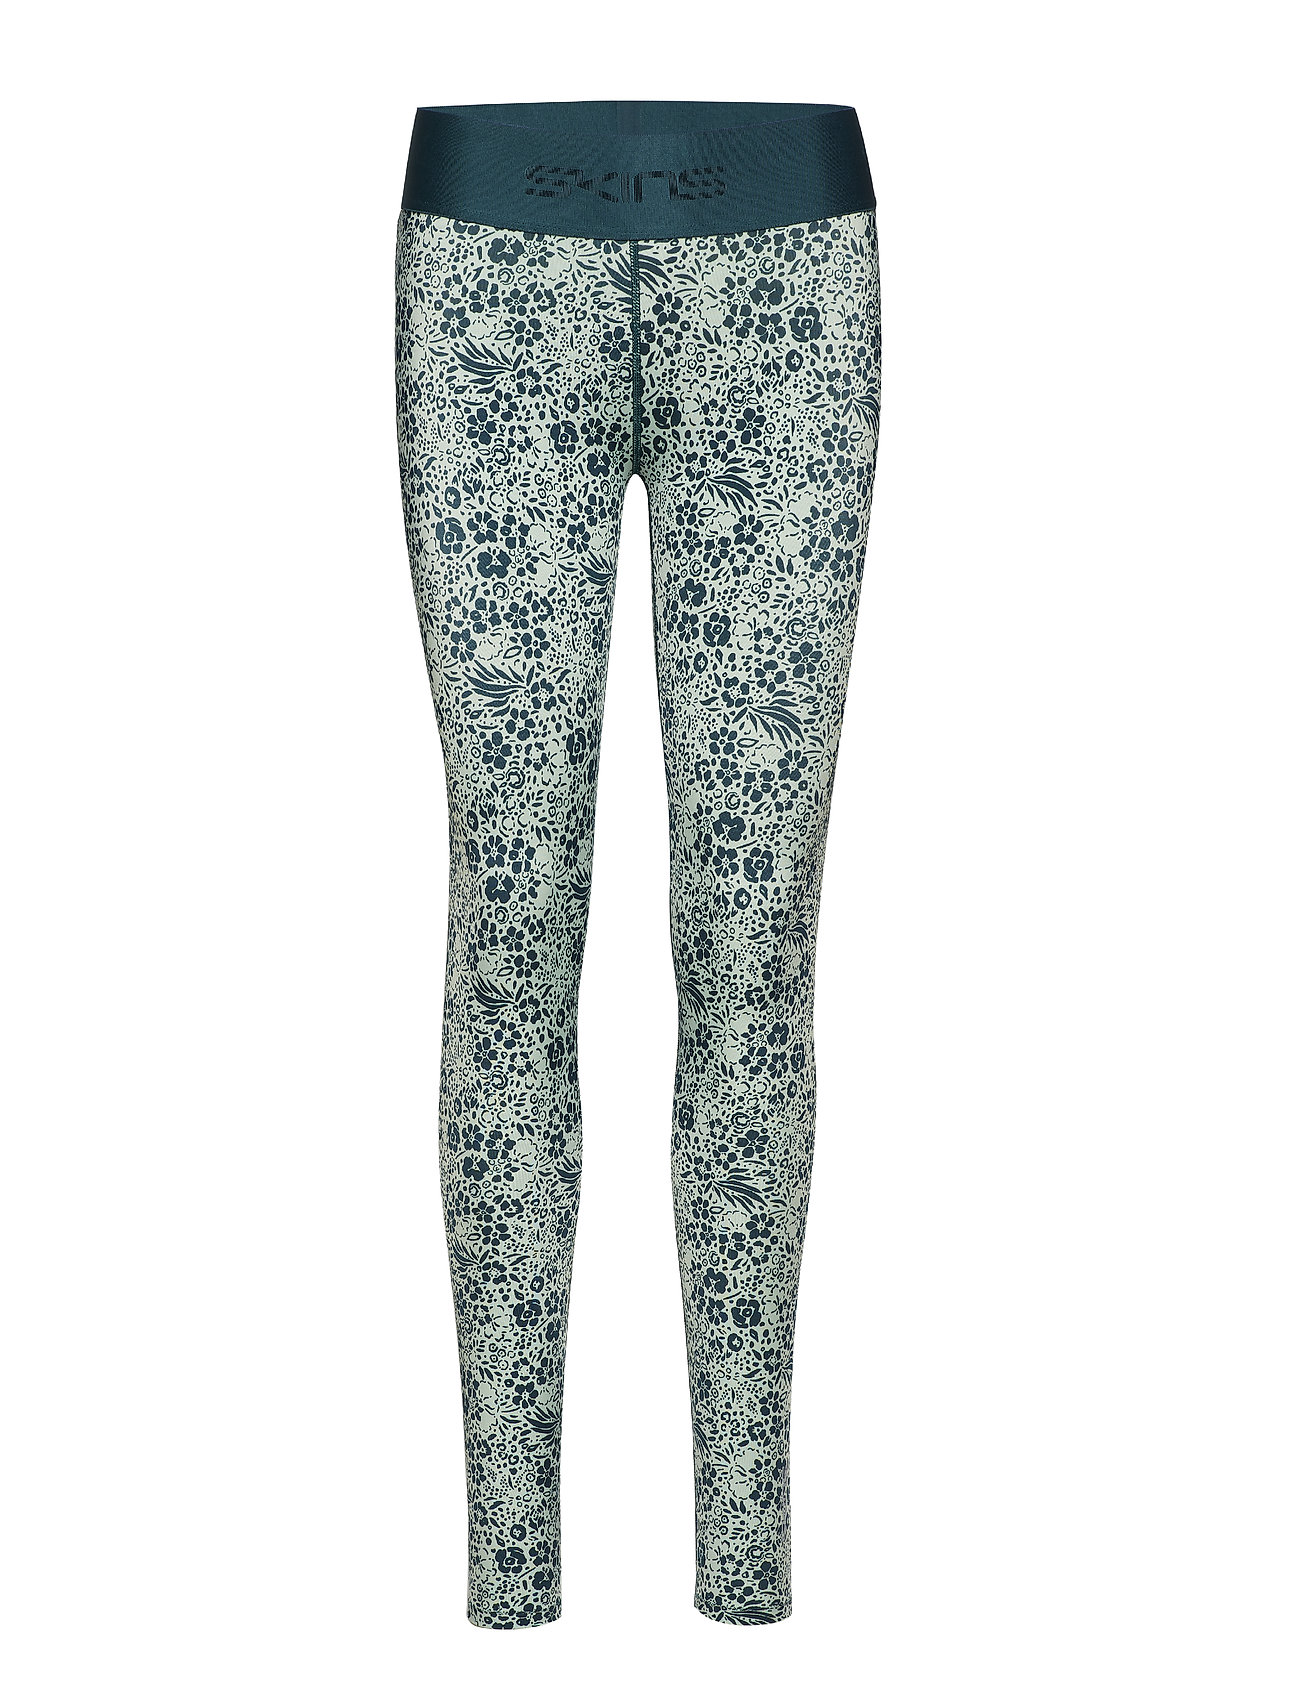 Skins DNAmic Primary Womens Long Tights - PETIT FLORAL LITCHEN